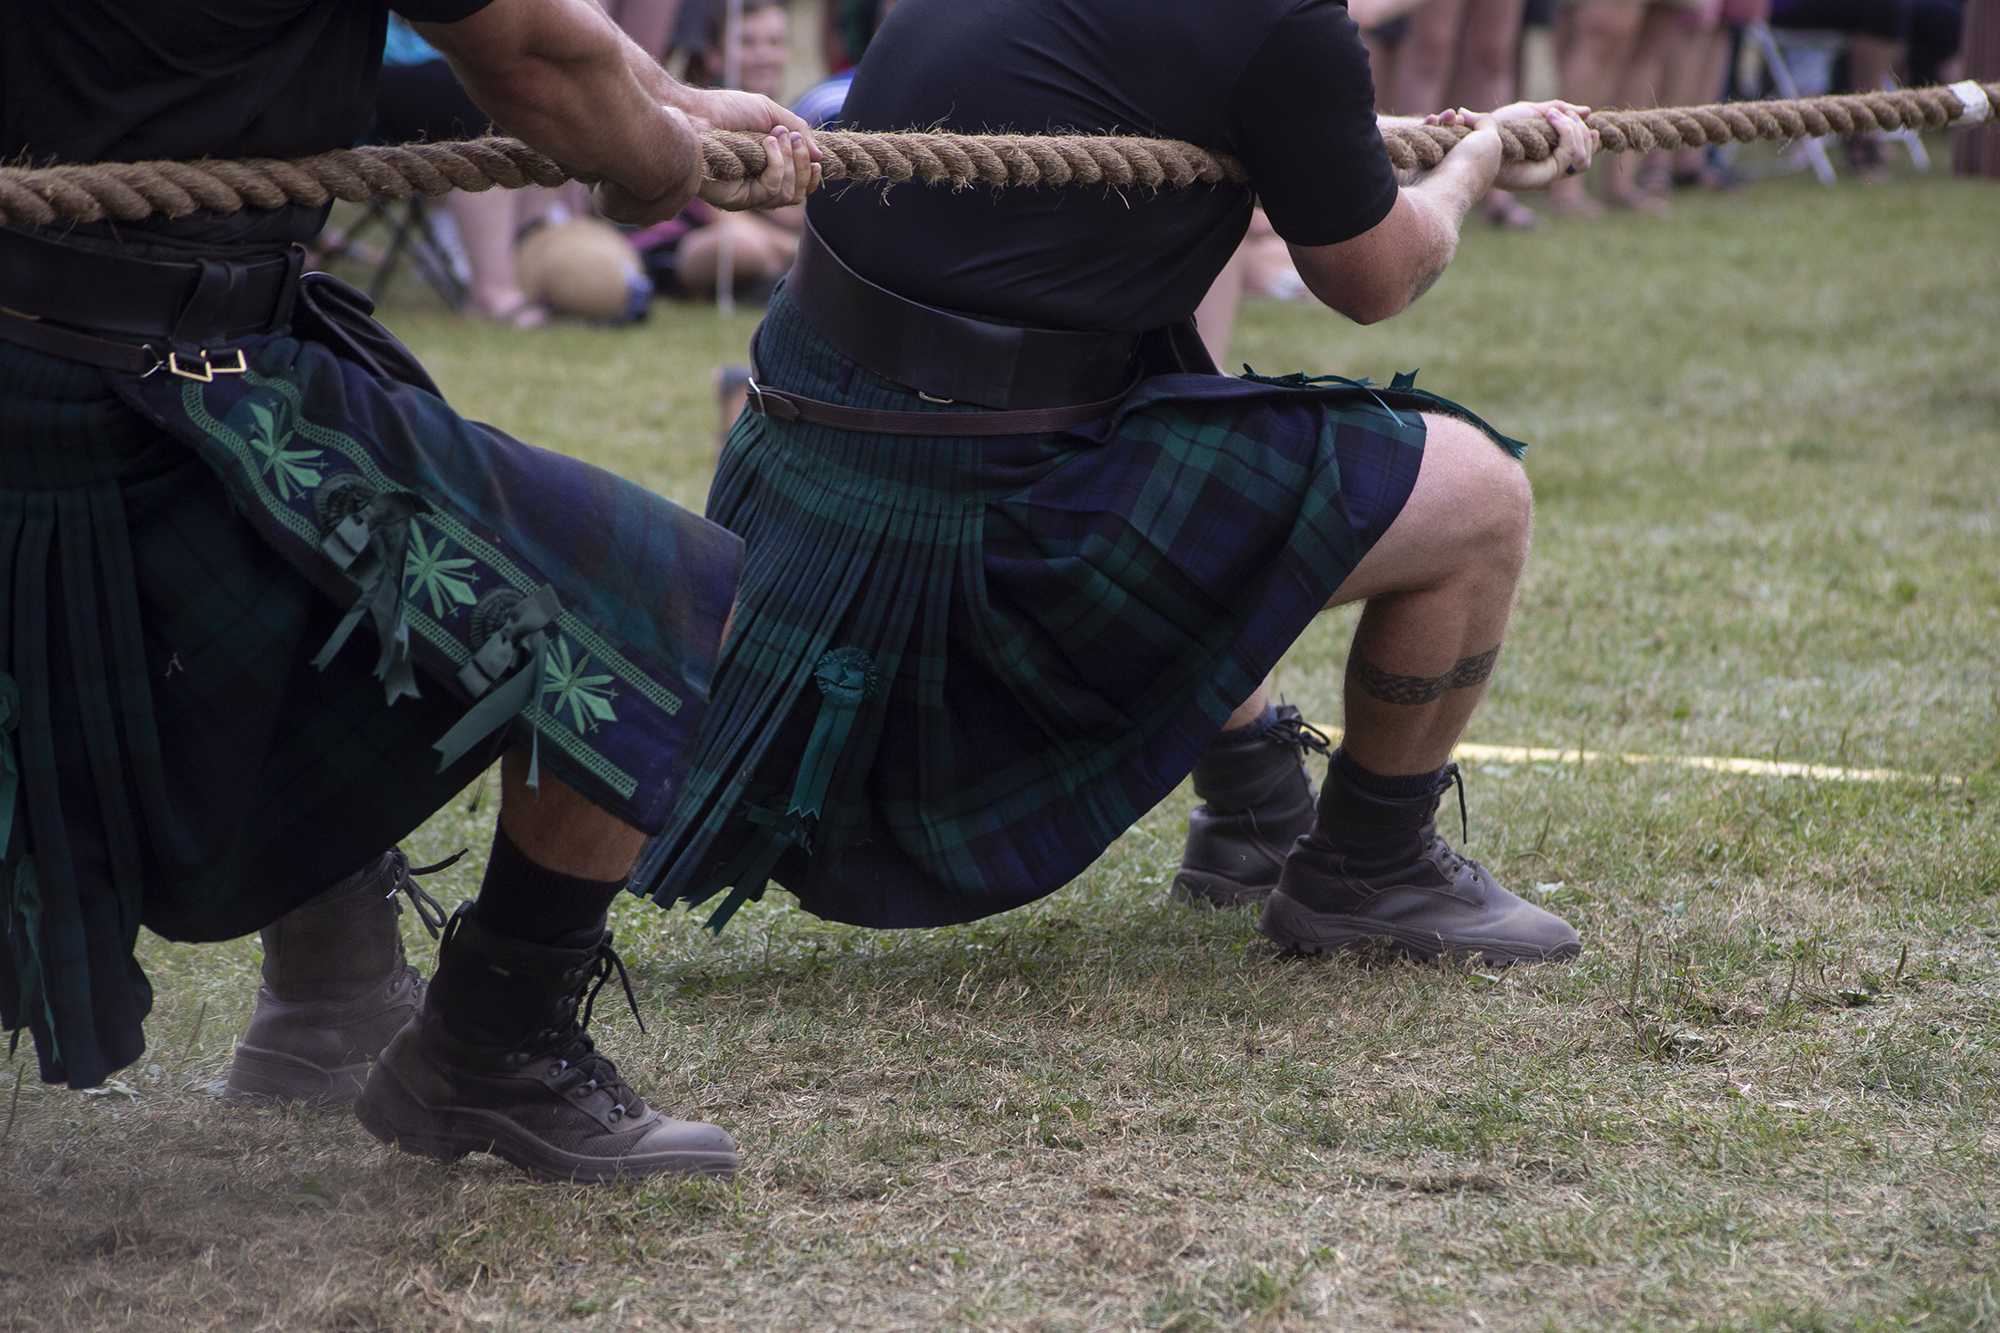 Warm up those bagpipes